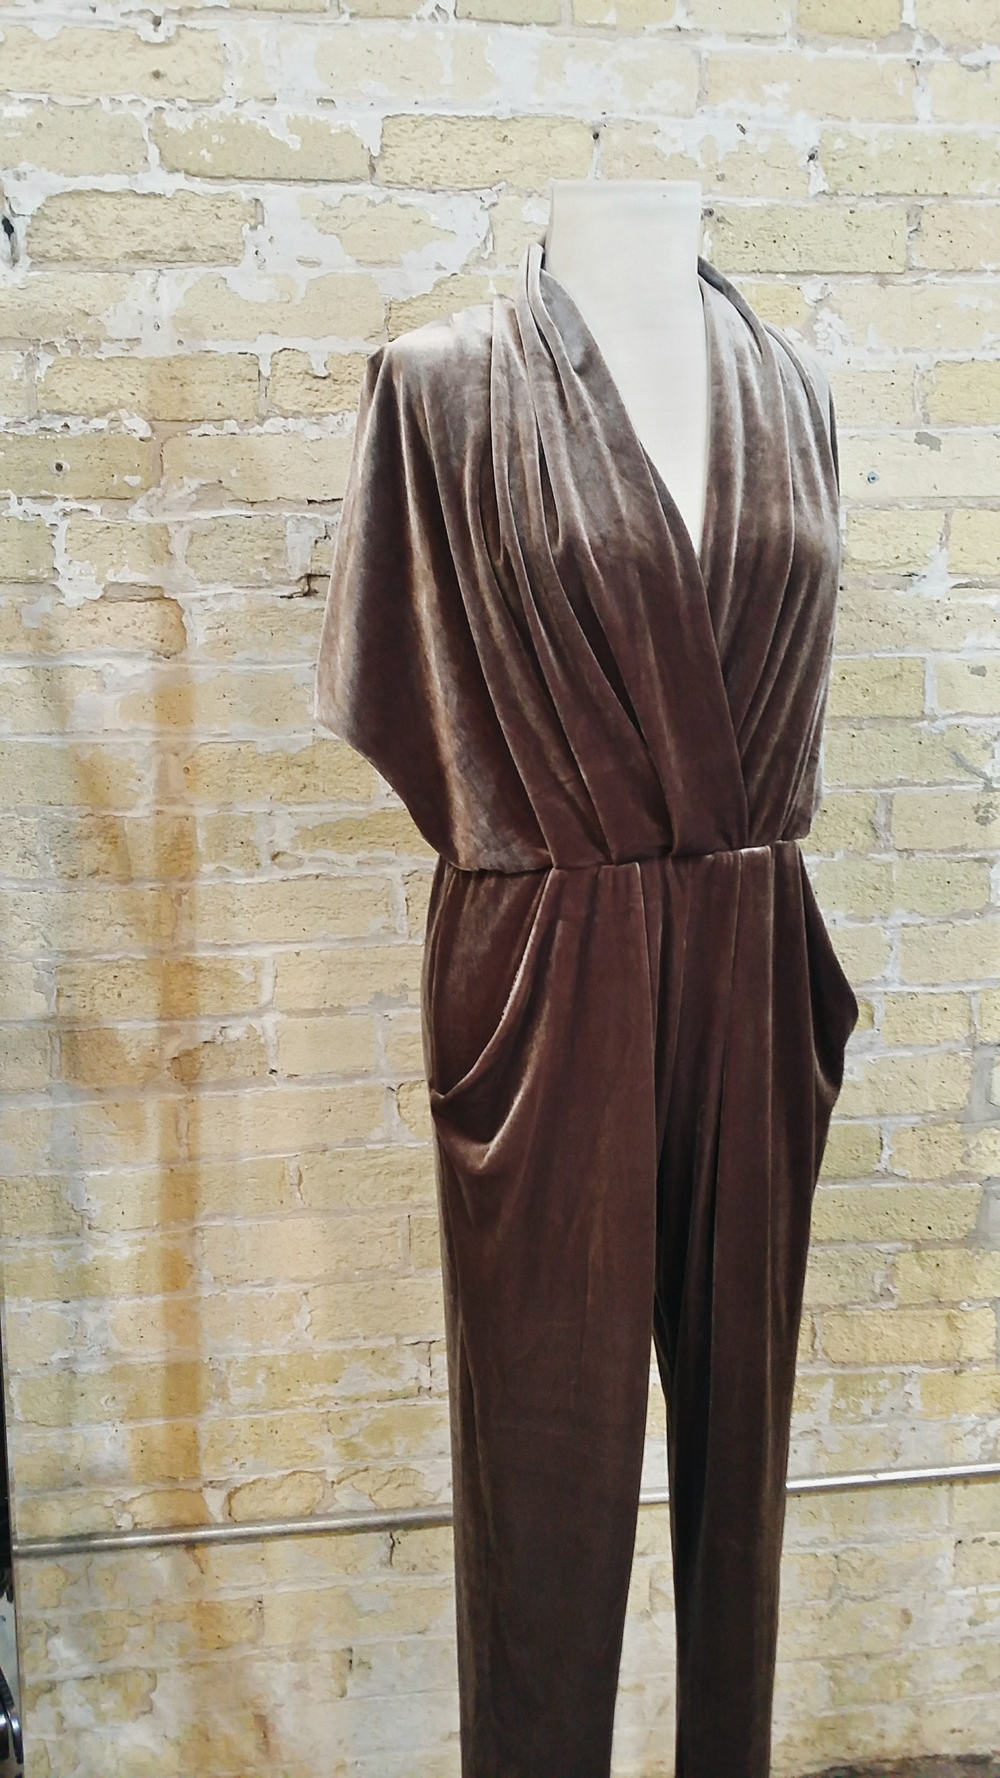 MEG Velvet Jumpsuit: $260 (available in other colors)